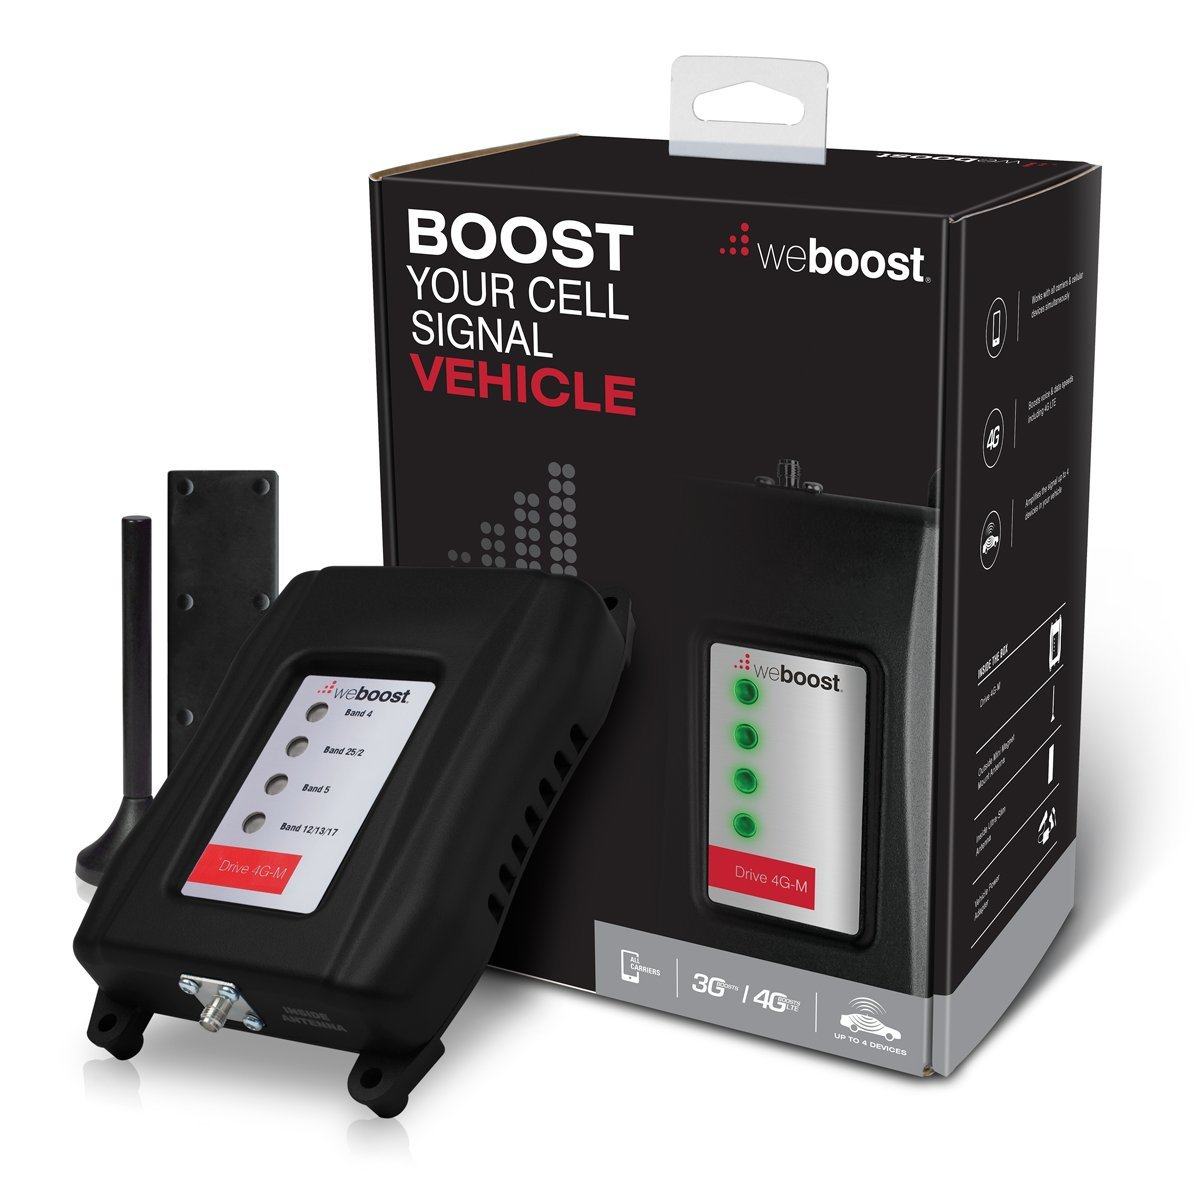 weBoost Drive 4G-M (470108)Vehicle Cell Phone Signal Booster 4G LTE - Cellular Signal Booster Amplifier for Car & Truck - Verizon, AT&T, T-Mobile, Sprint - Enhances 4G LTE Cell Phone Signals by weBoost